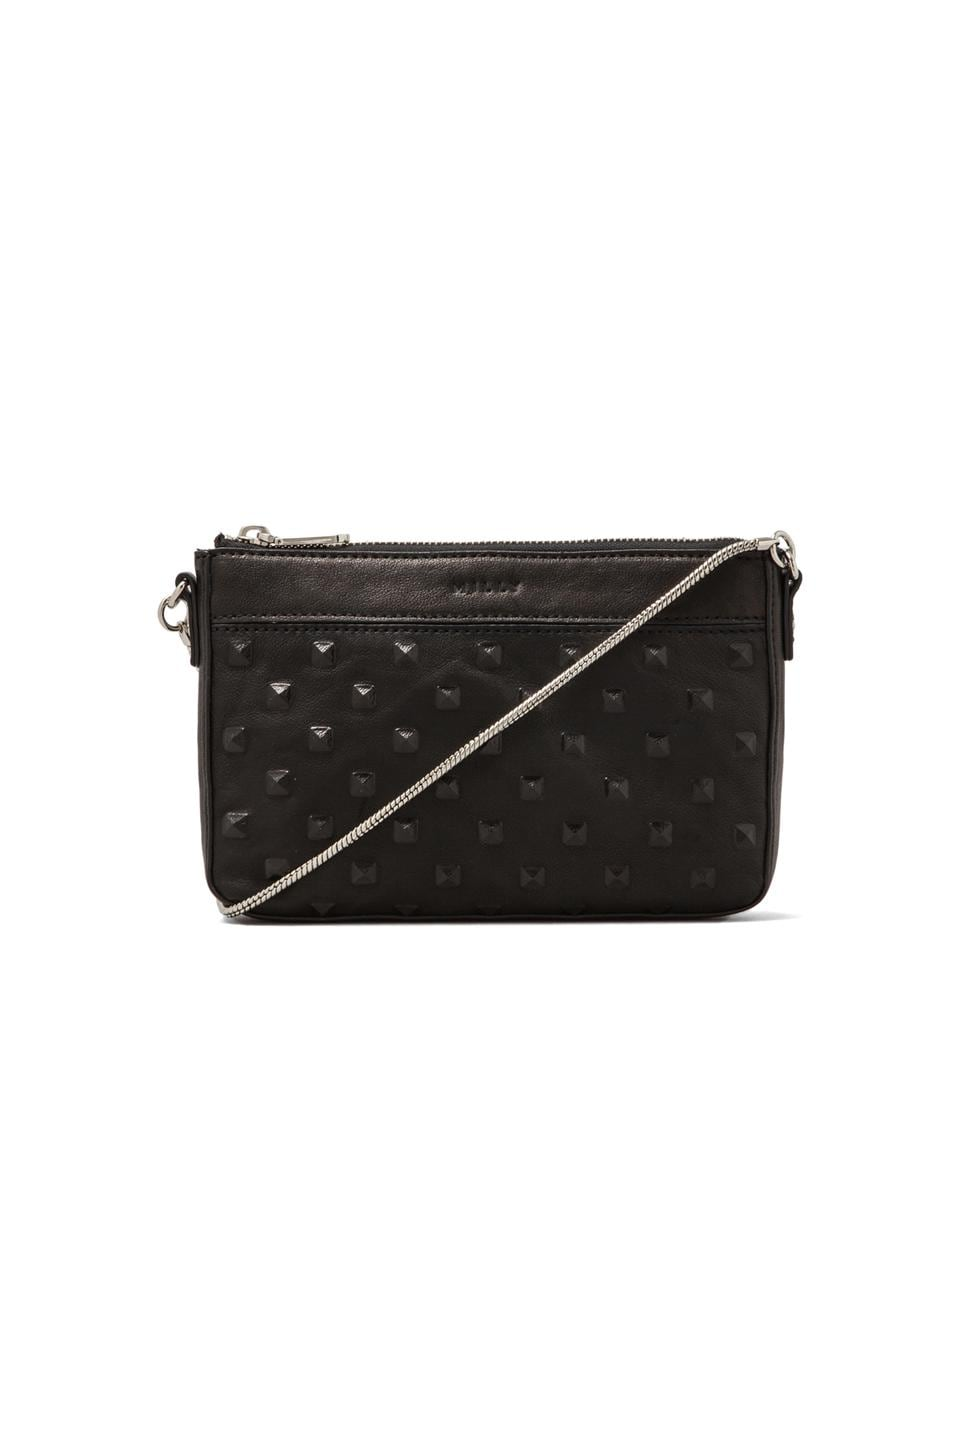 MILLY Perry Collection Mini Bag in Black